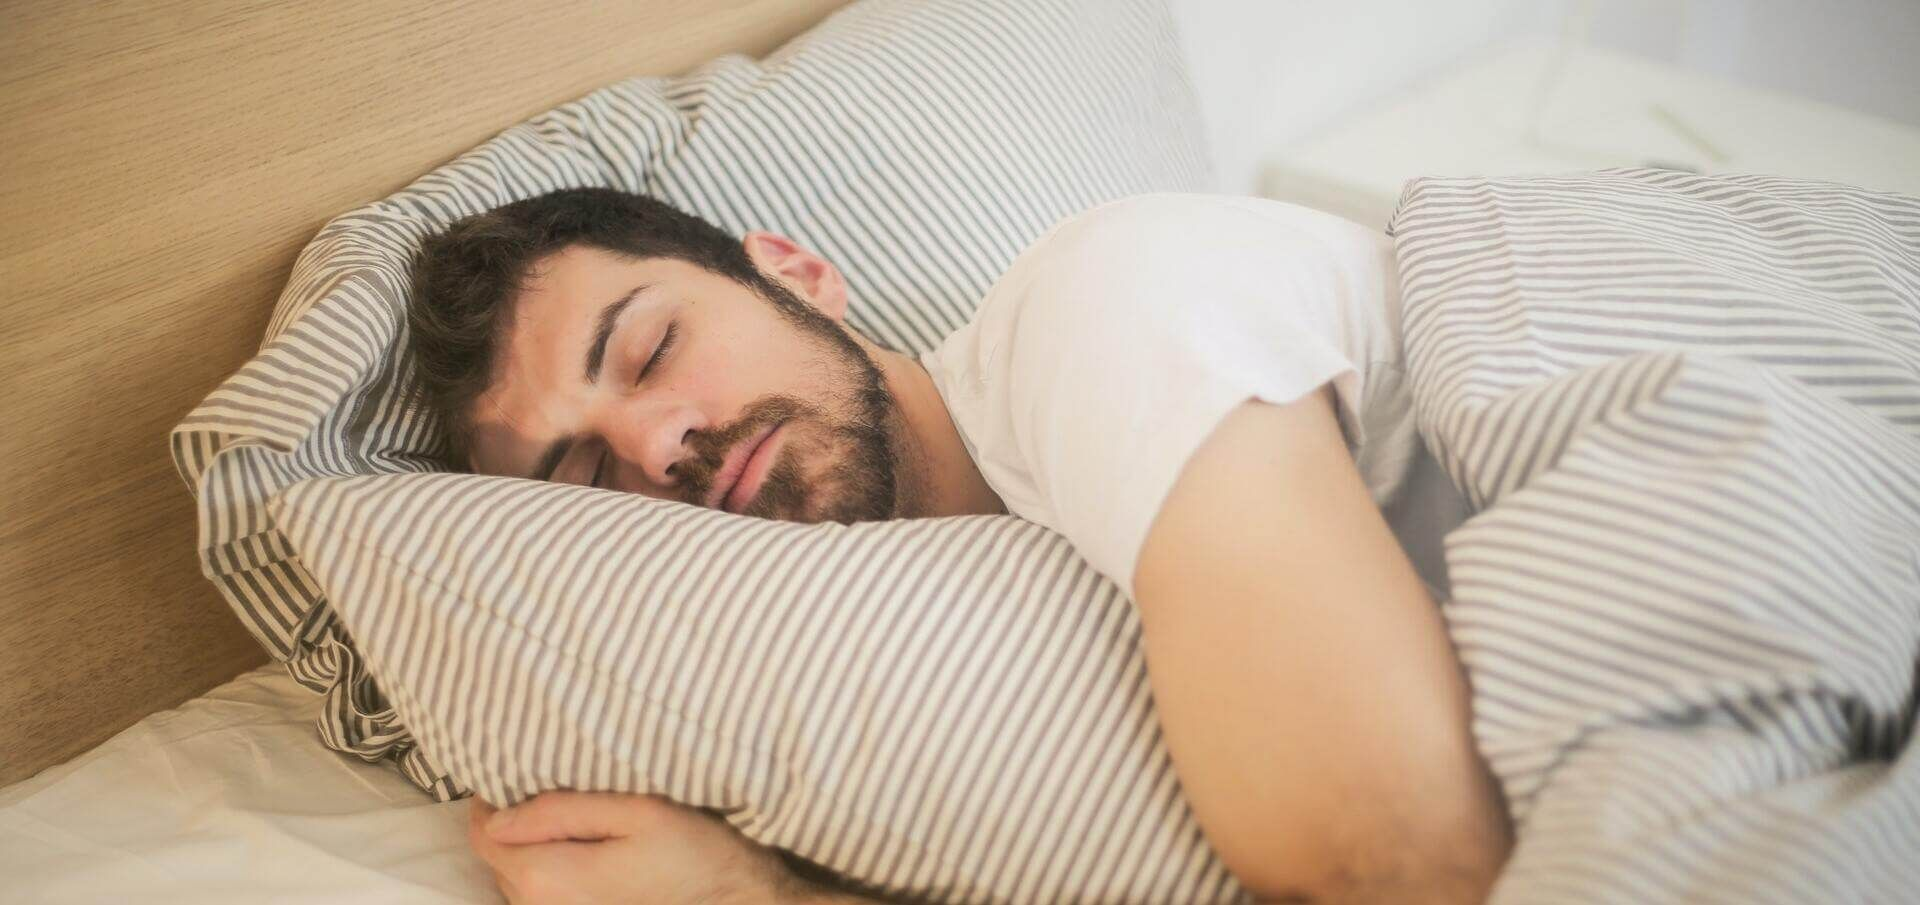 How Hotels And B&B's Can Improve Sleep For Their Guests